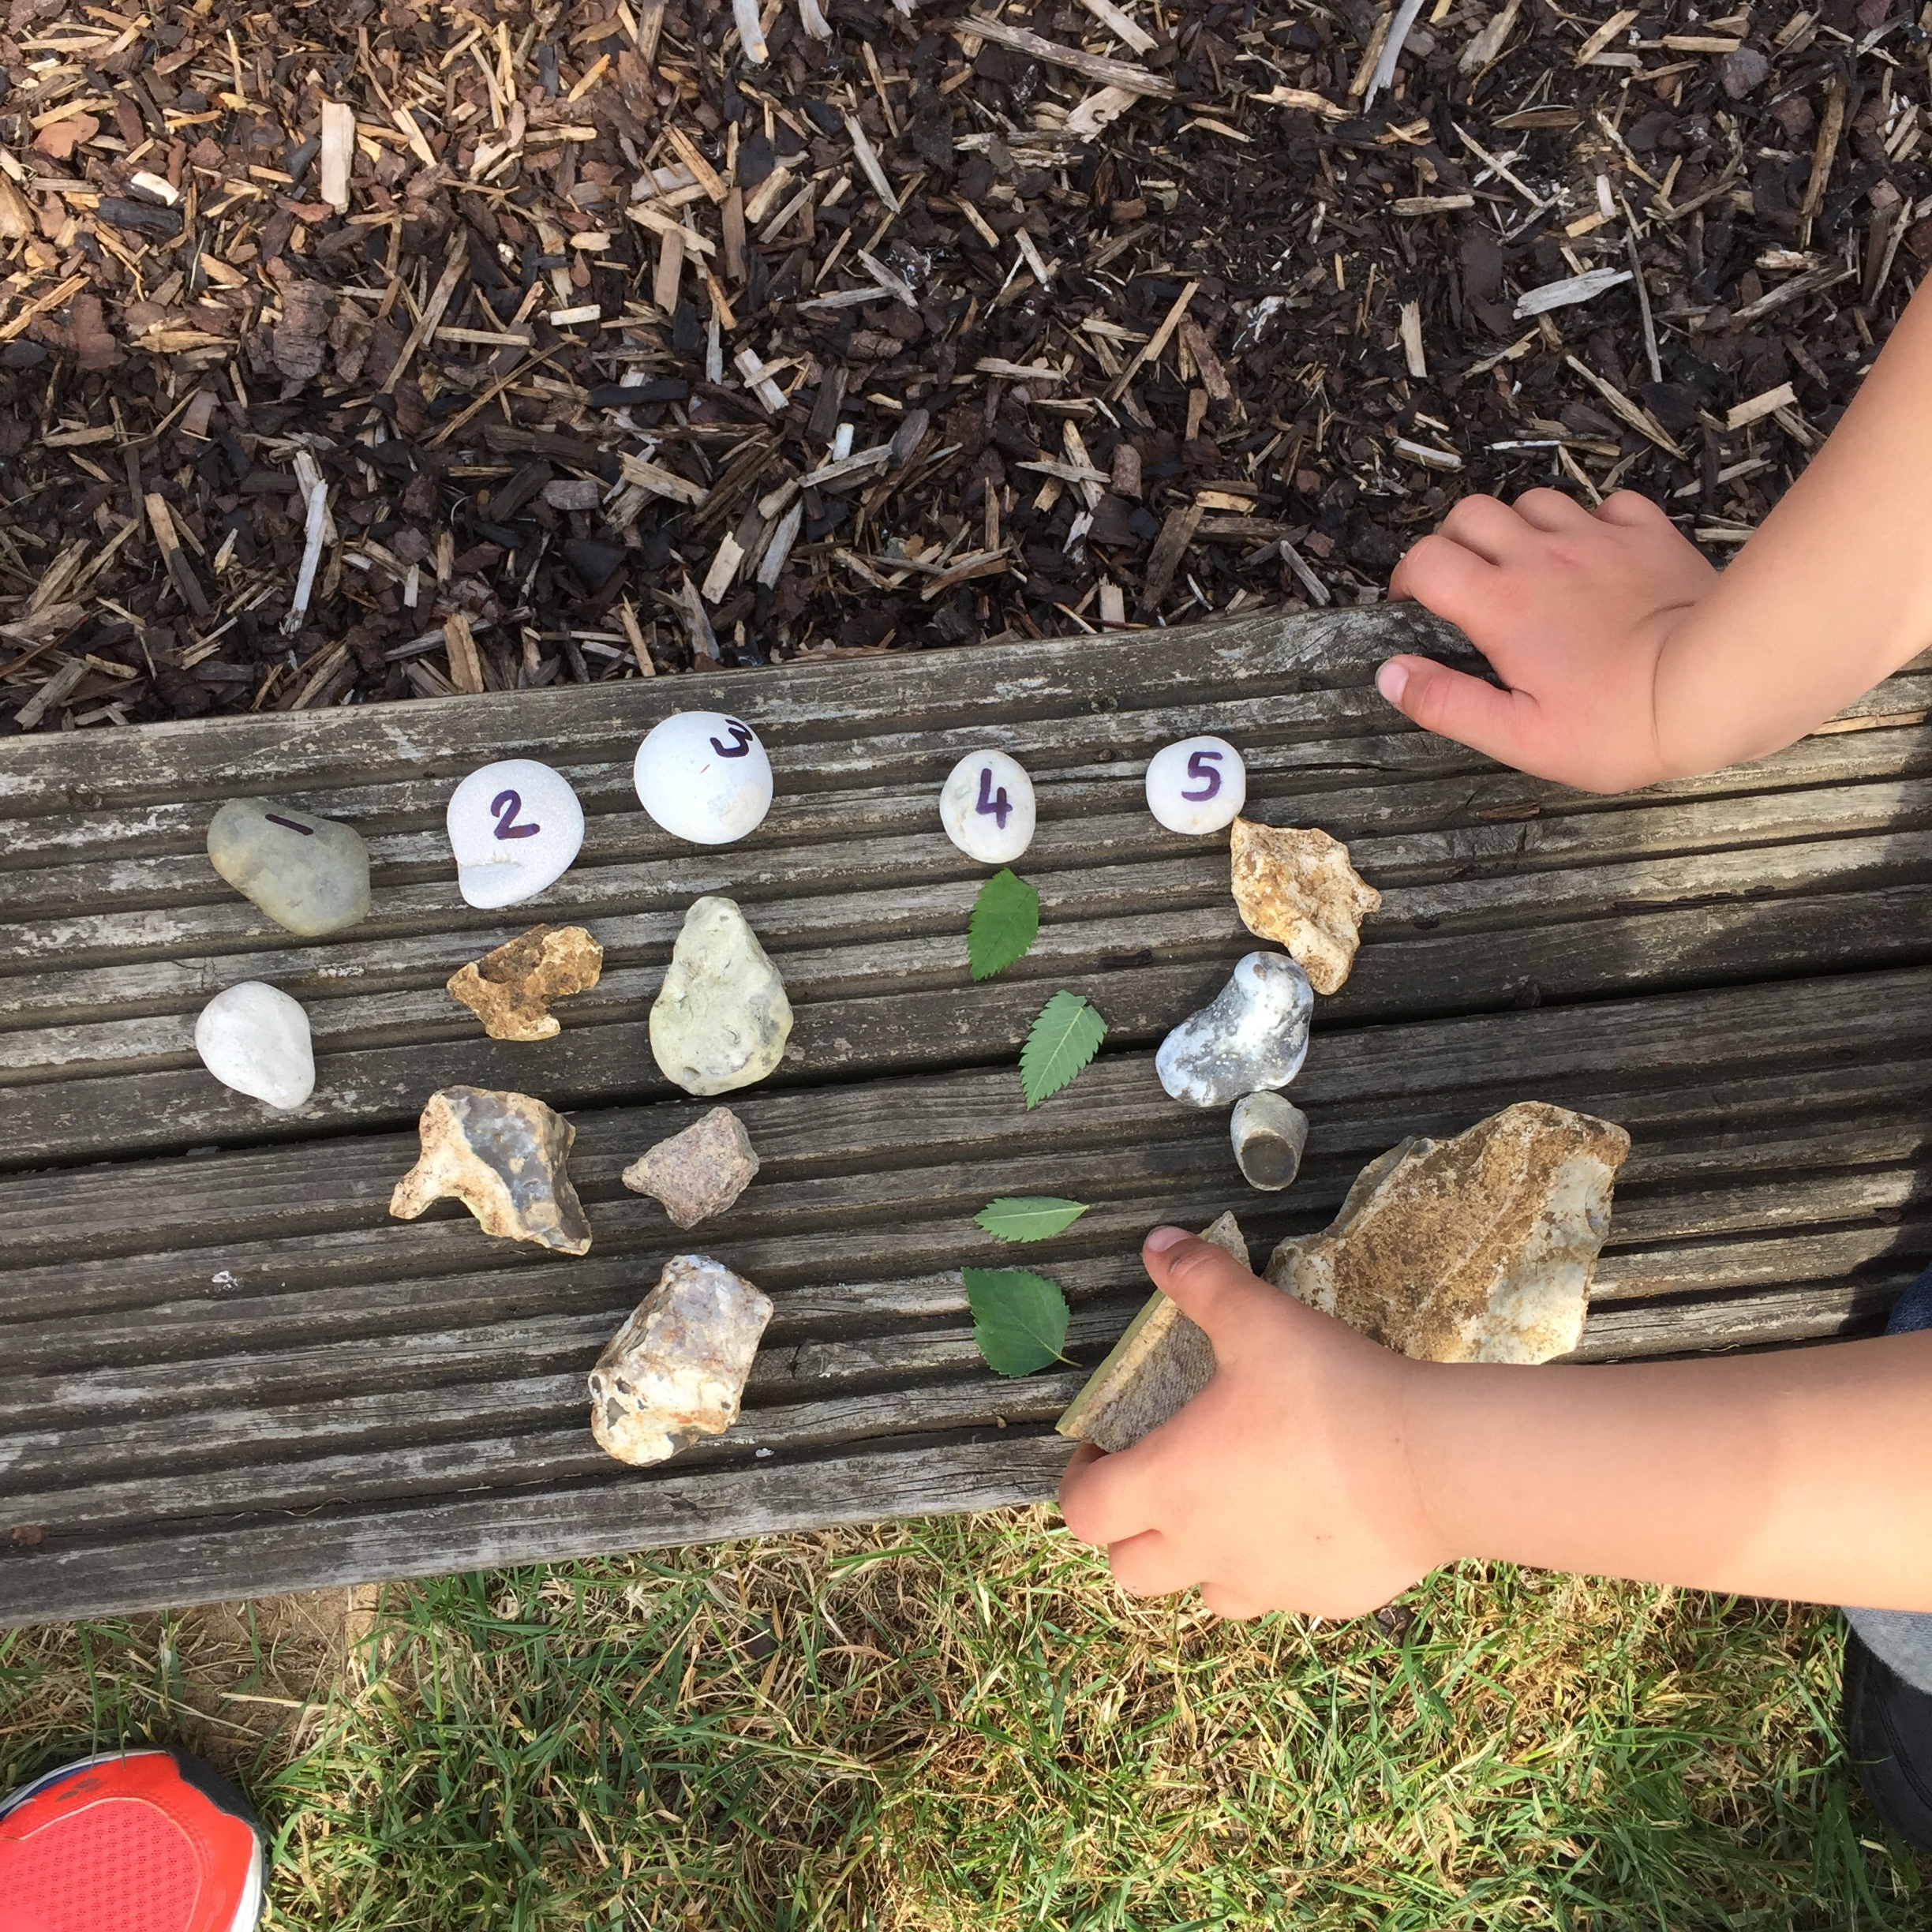 The results of a numbered stone treasure hunt combined with appropriate quantities of woodland materials.